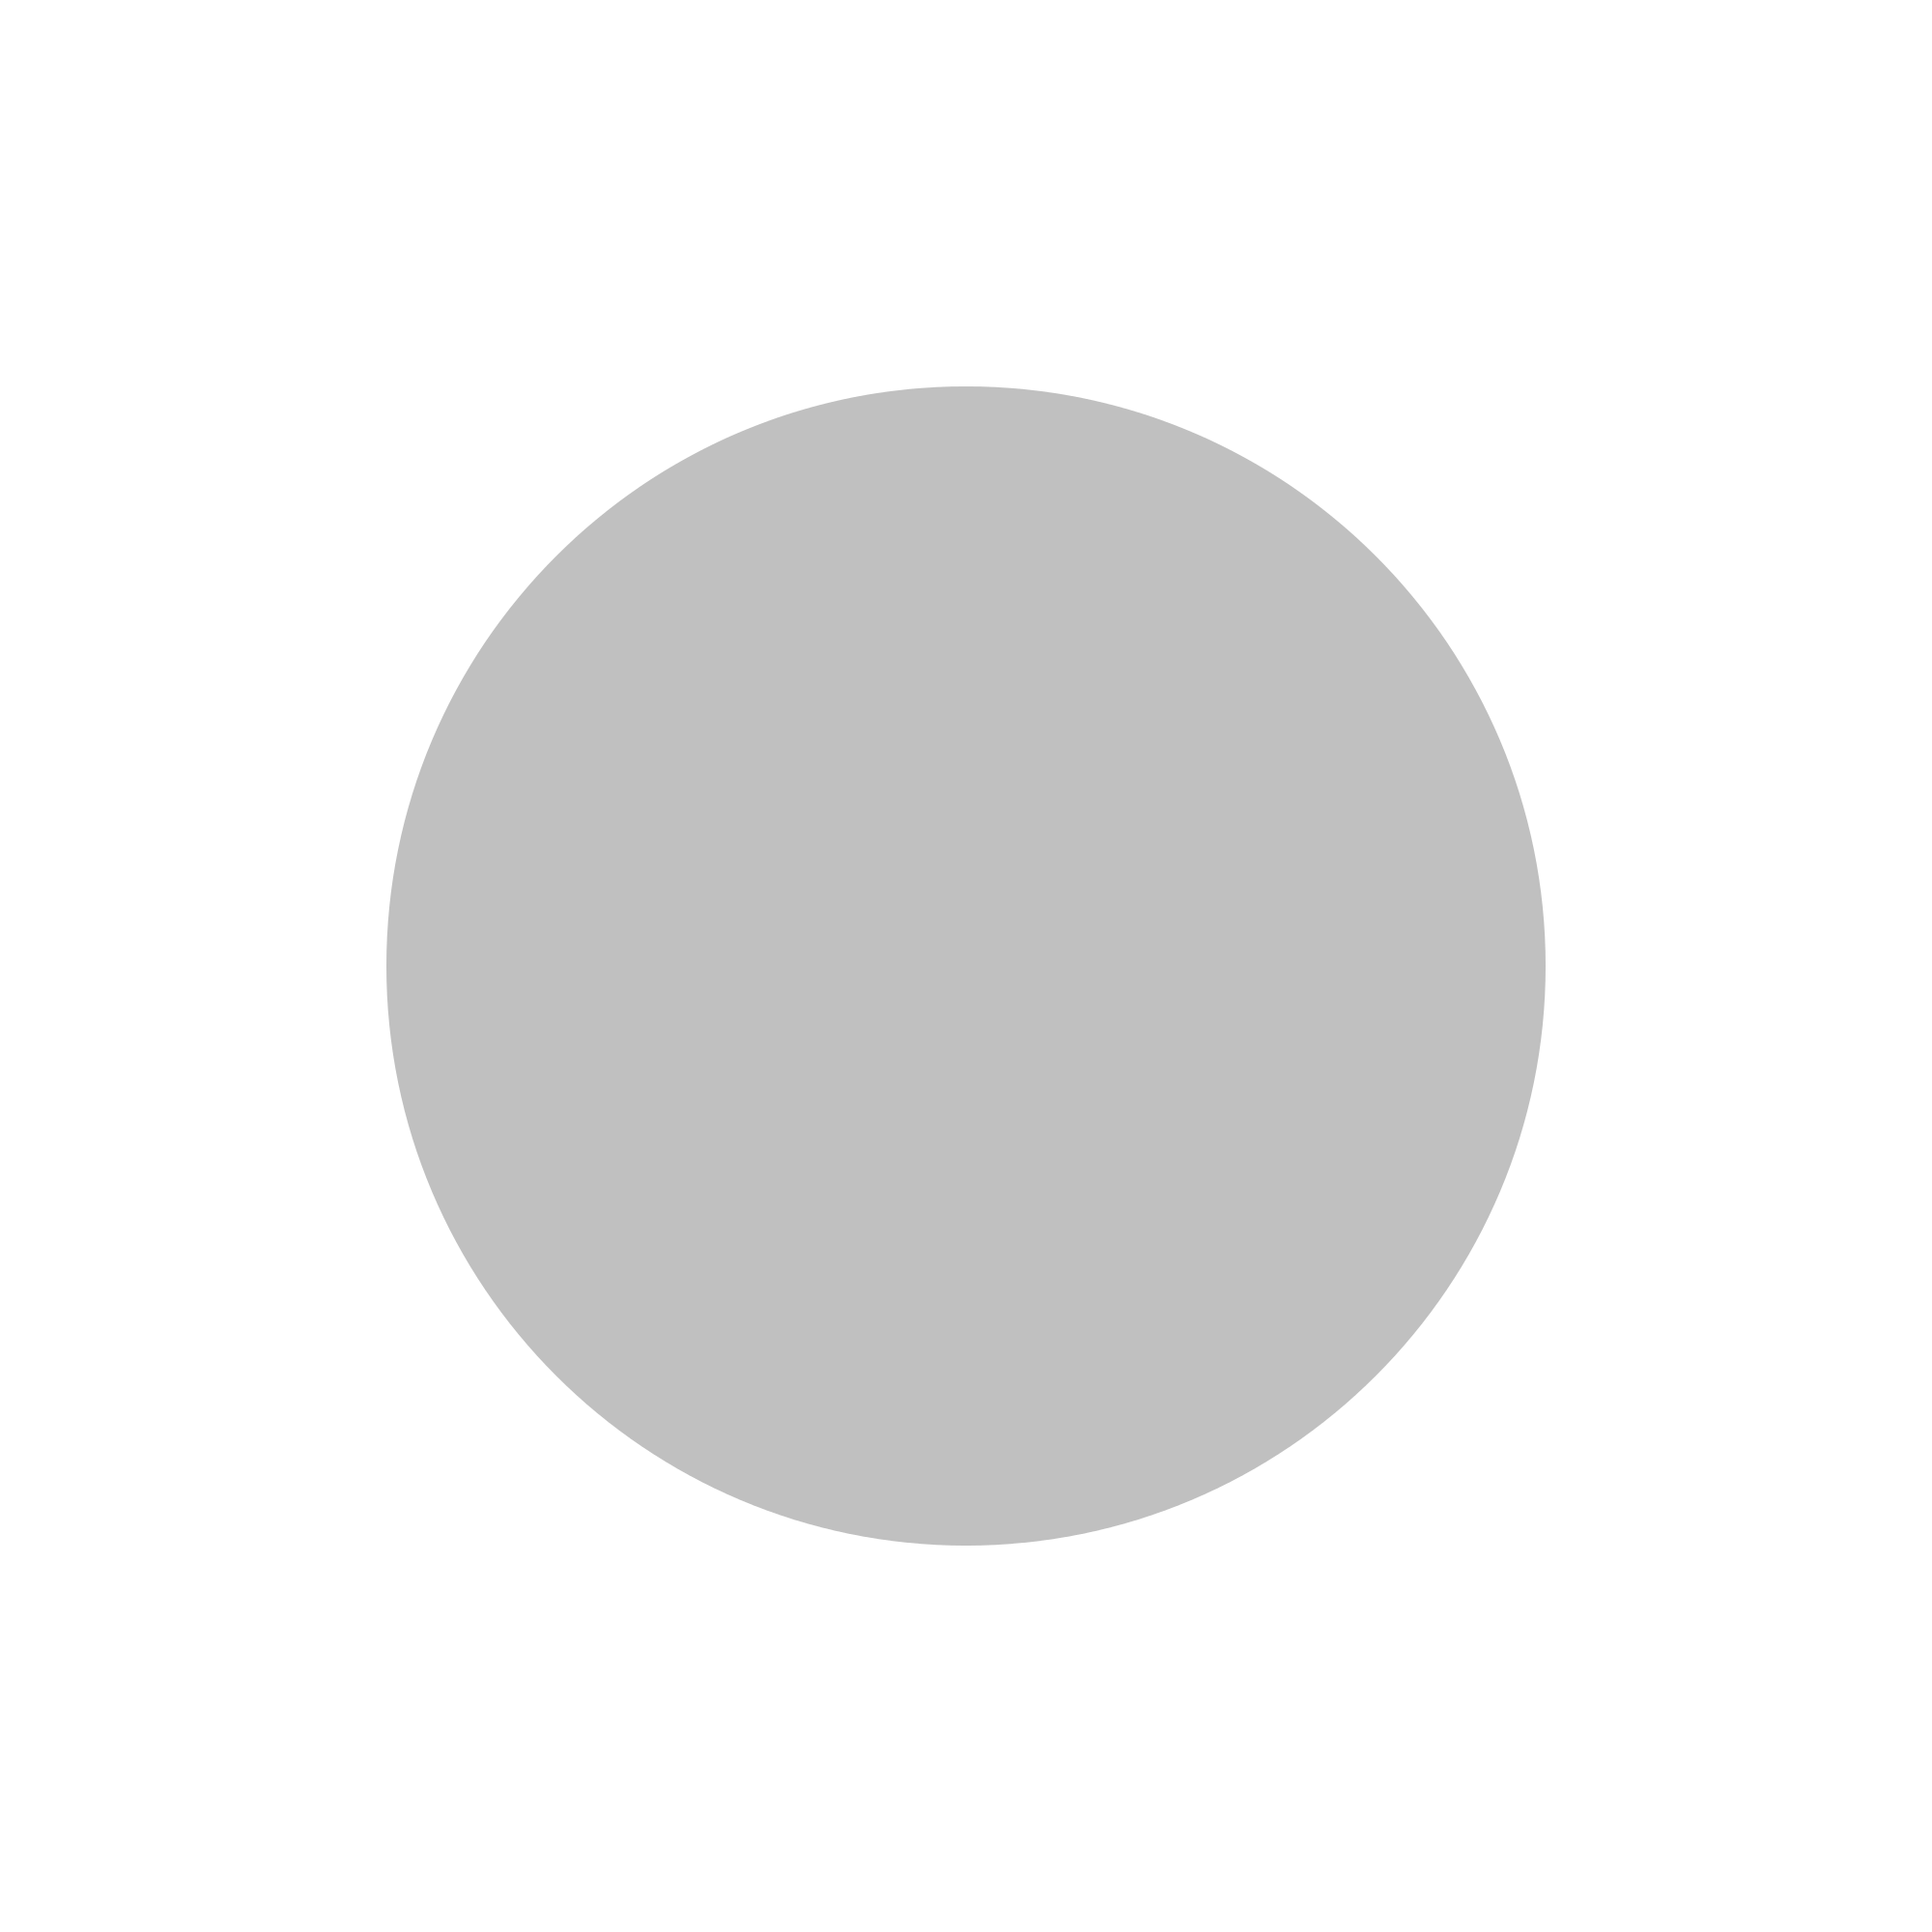 Grey oval png. File bsicon exlbhf svg